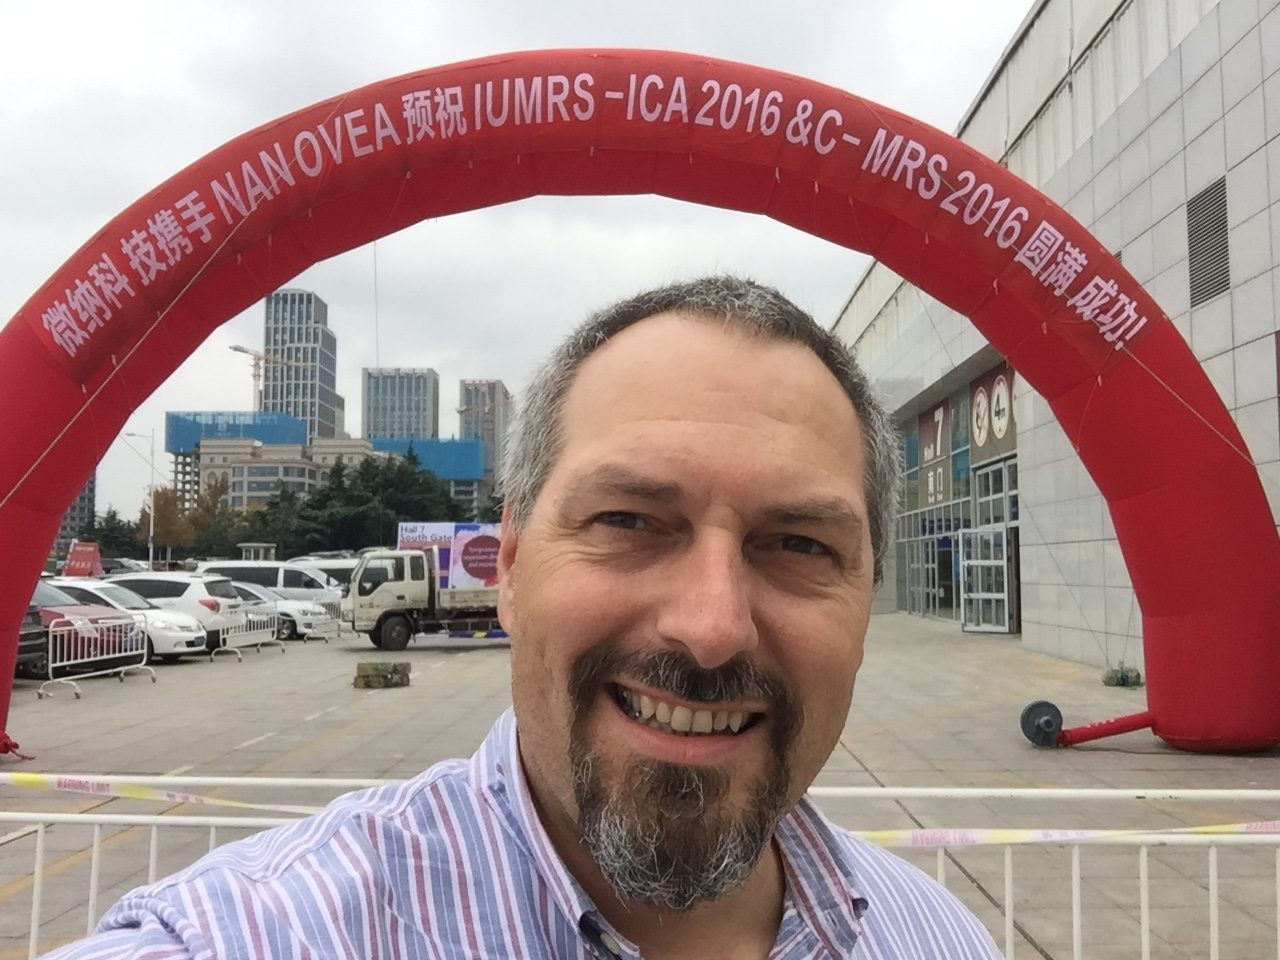 IUMRS-ICA 2016 conference in Qingdao this week